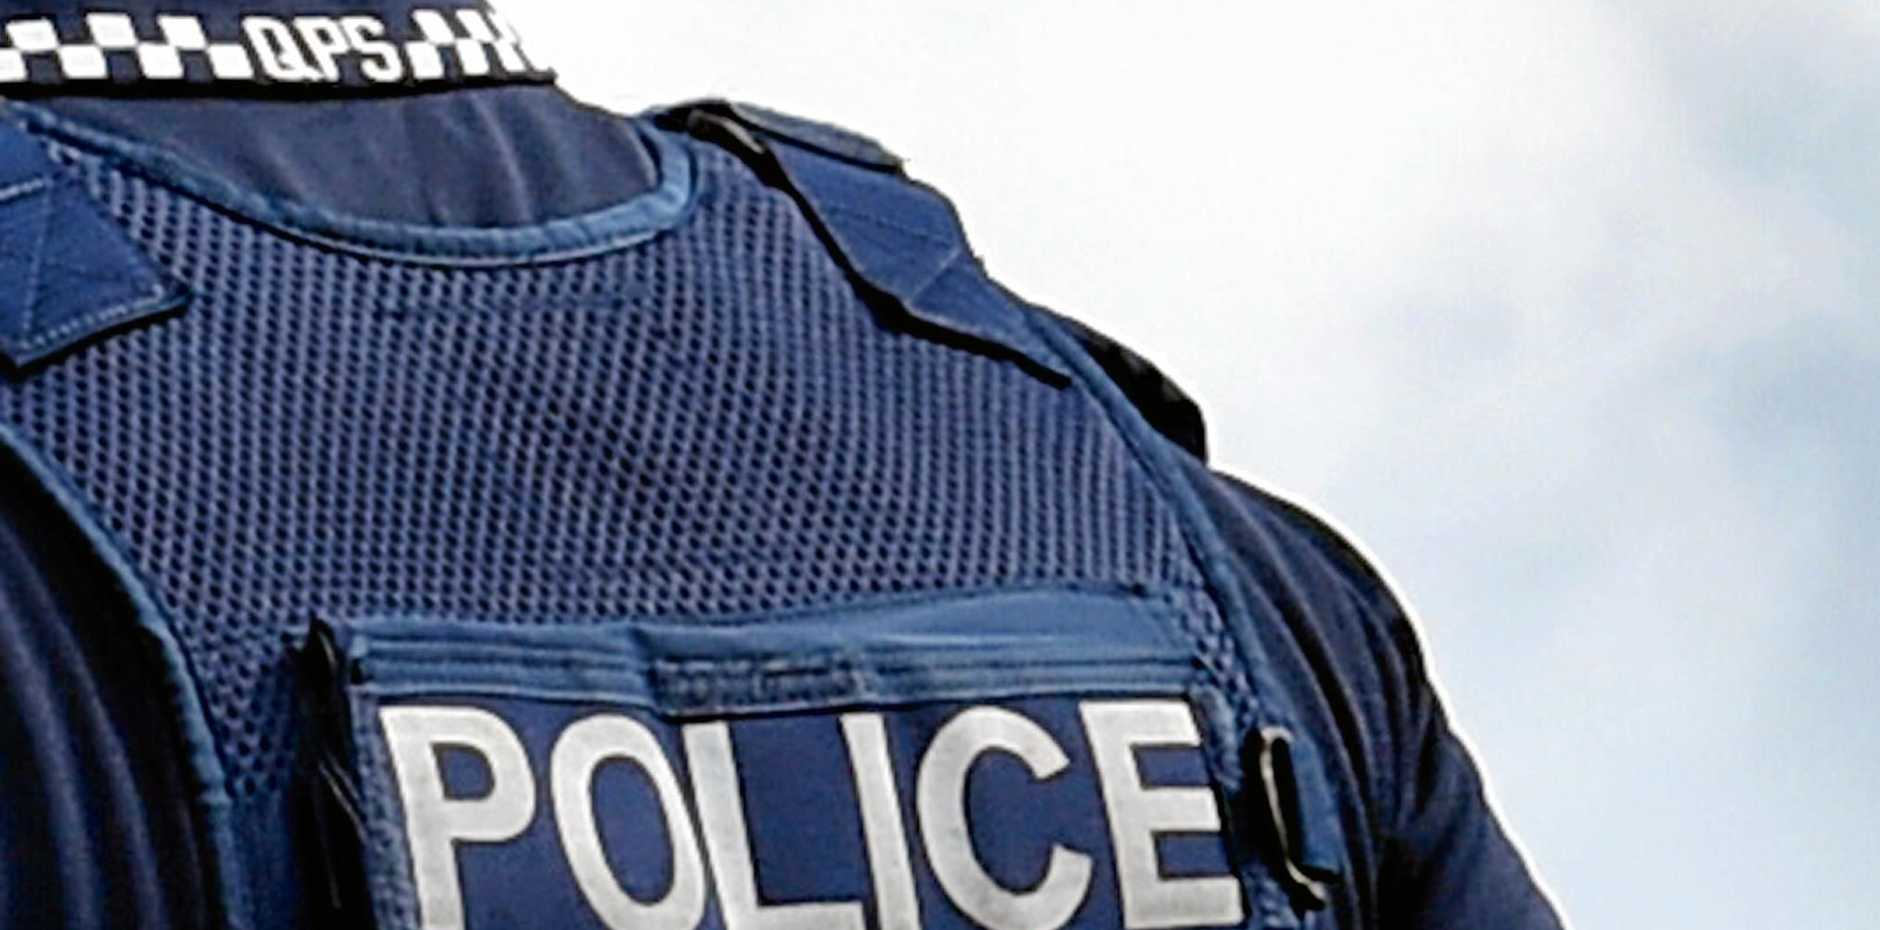 A Rockhampton man with hepatitis C spat on a police officer.